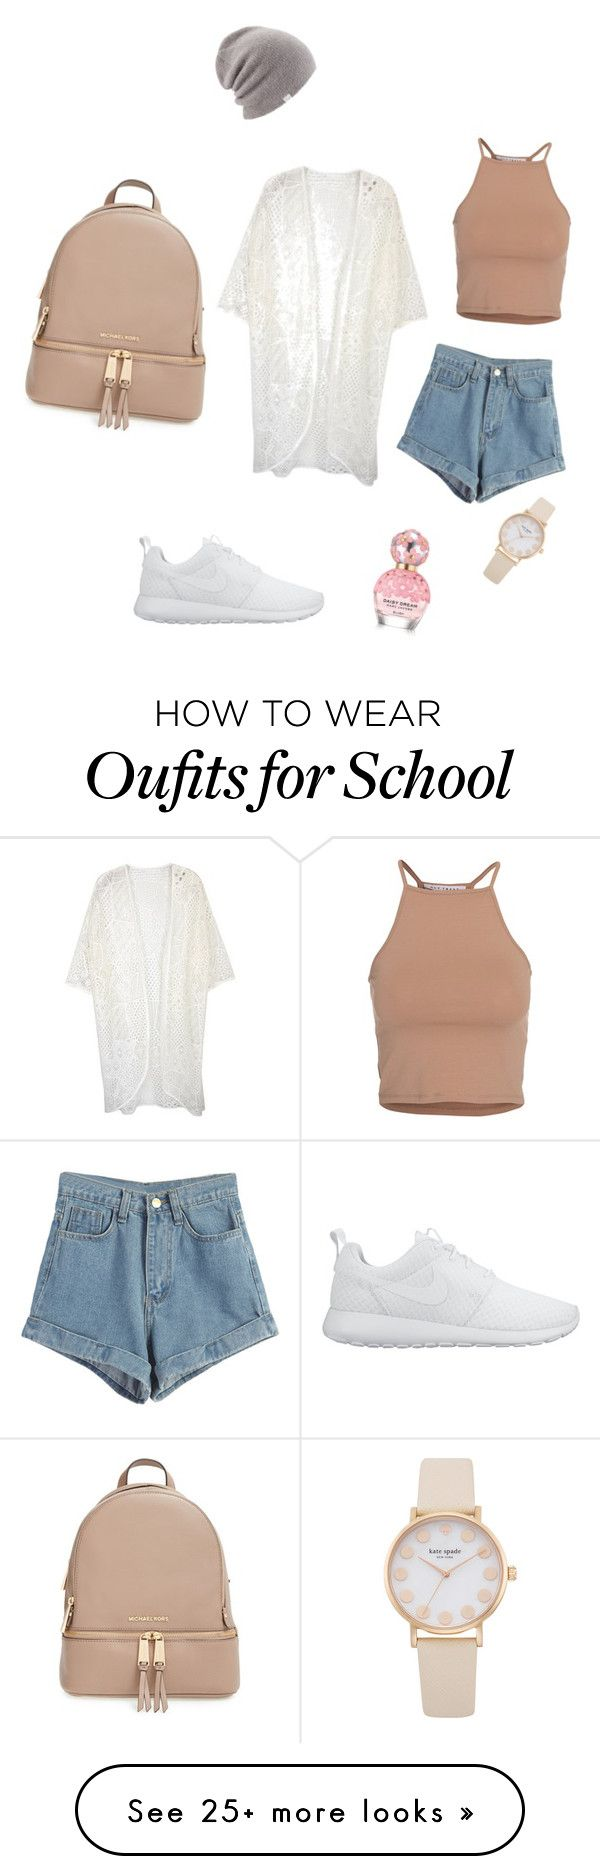 """""""school wear"""" by mumbleberry on Polyvore featuring MICHAEL Michael Kors, NIKE, NLY Trend, Marc Jacobs, WithChic and Coal"""